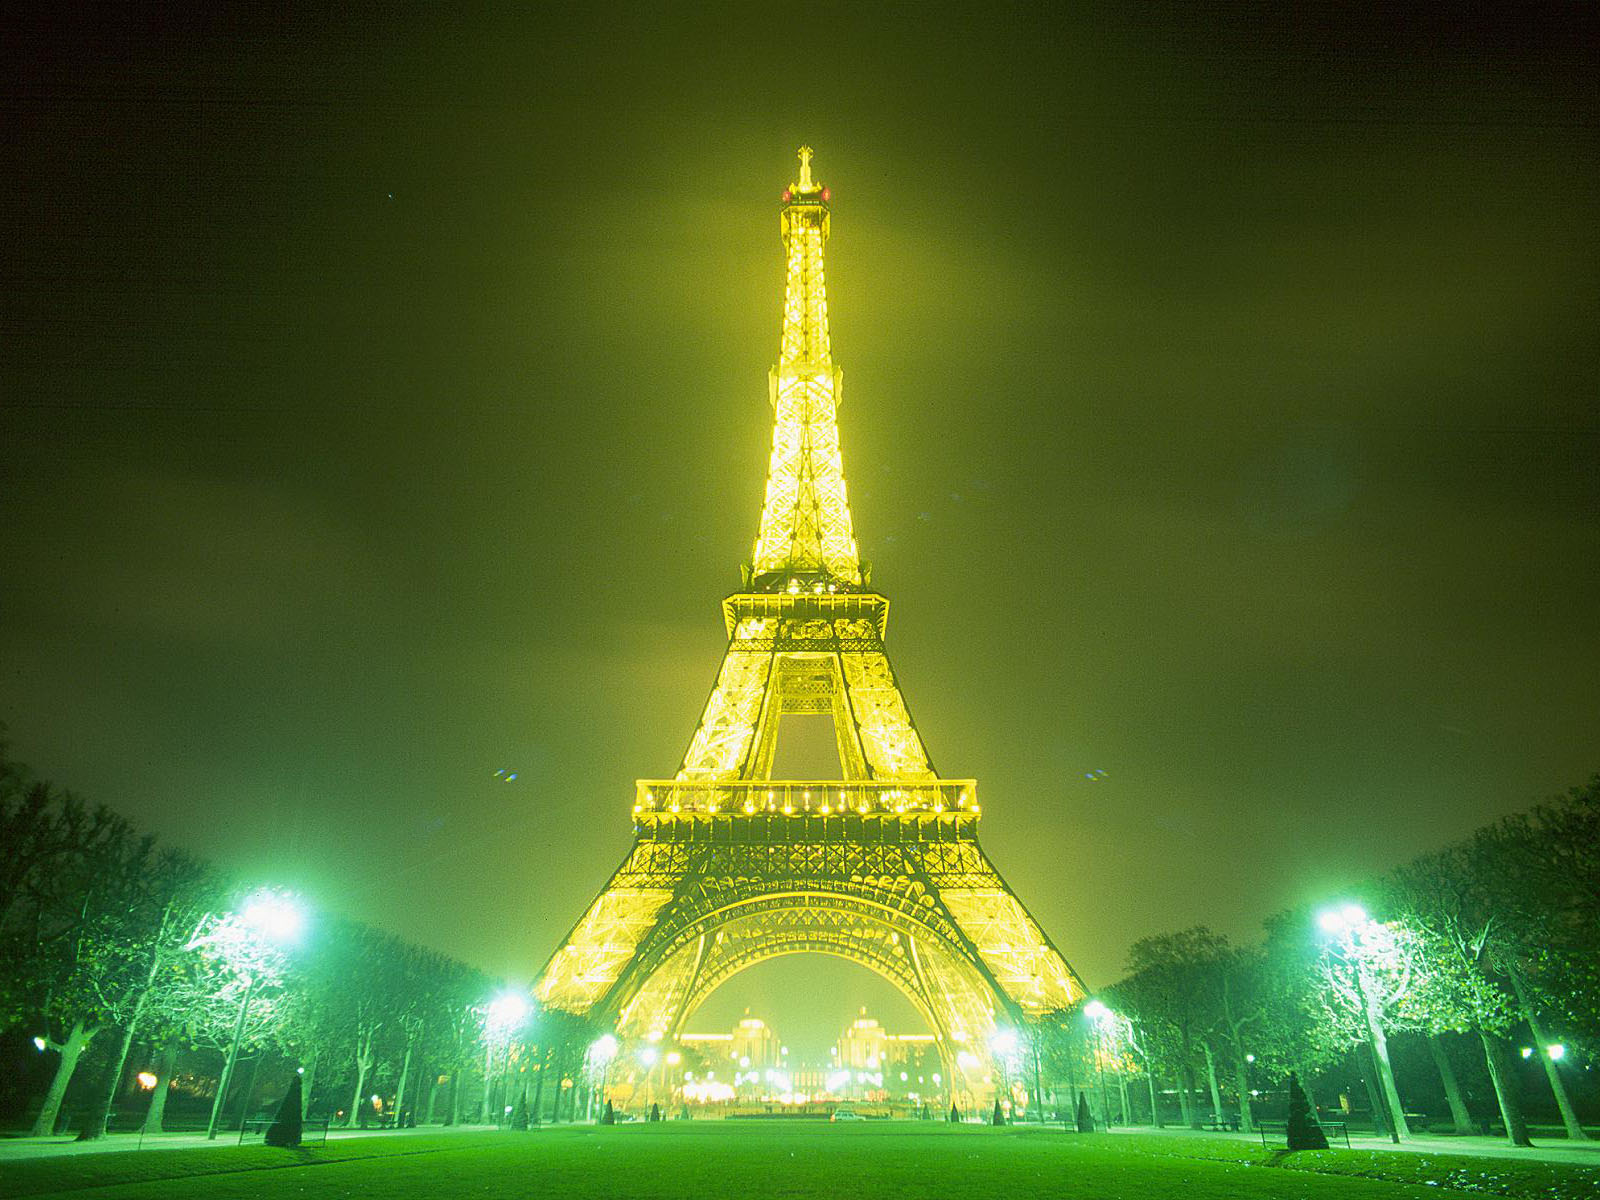 eiffel tower wallpaper - photo #11